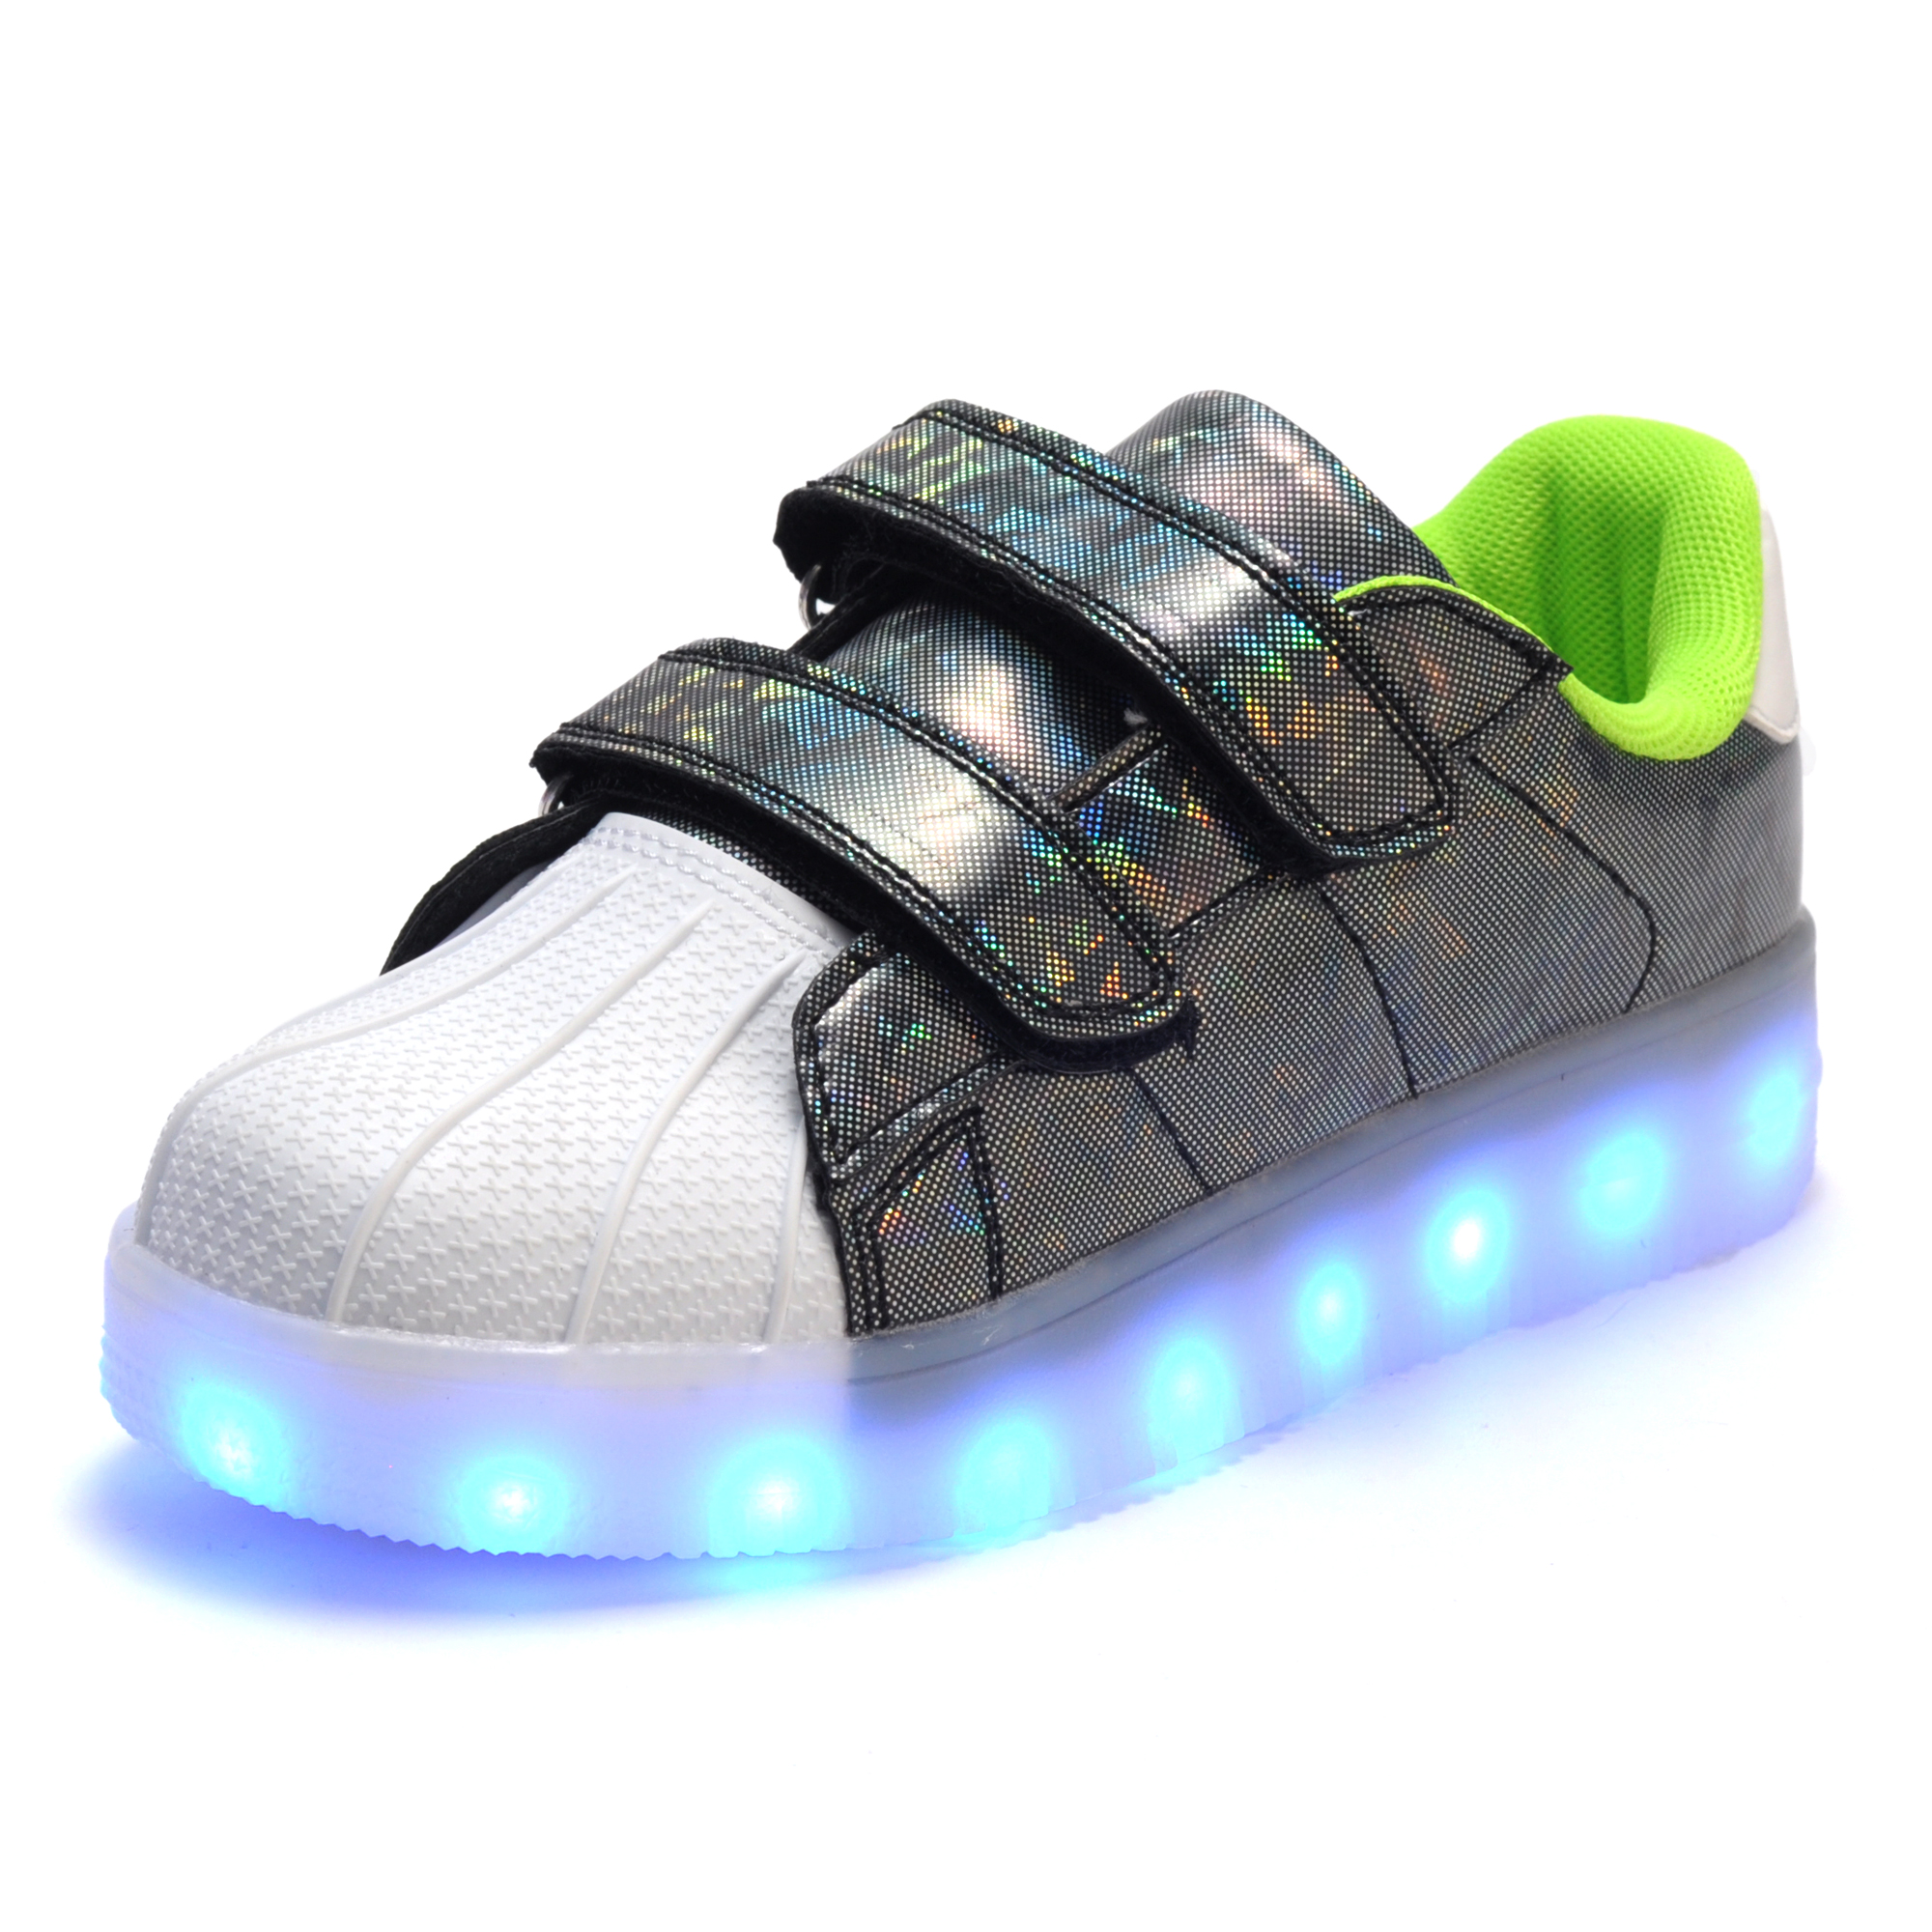 Fashion-Children-LED-light-up-Shoes-For-Kids-Sneakers-Fashion-USB-Charging-Luminous-Lighted-Boy-Girl-Sports-Casual-Enfant-Shoes-3